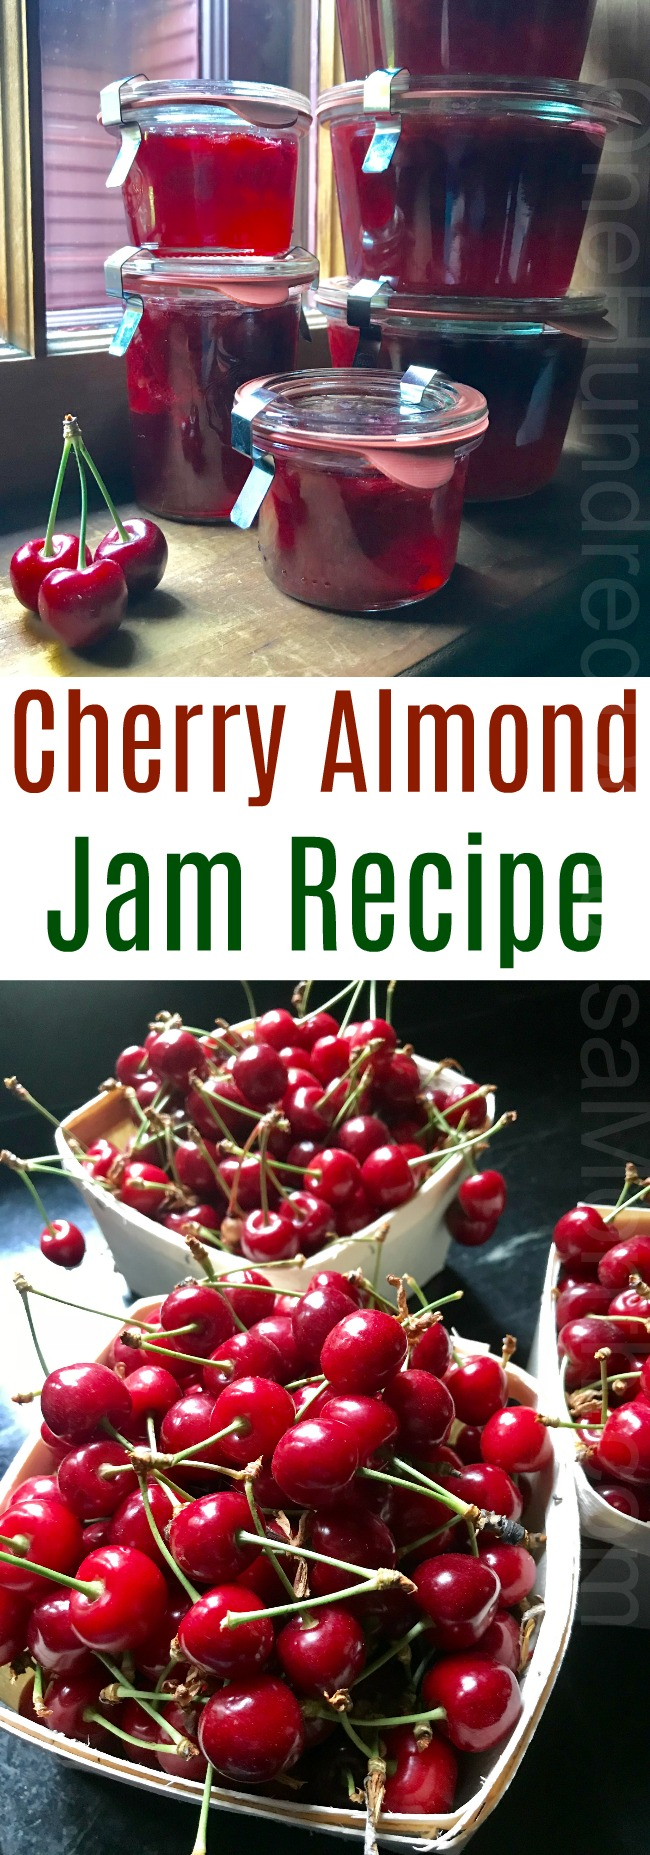 Cherry Almond Jam Recipe {It's AMAZING!!!}